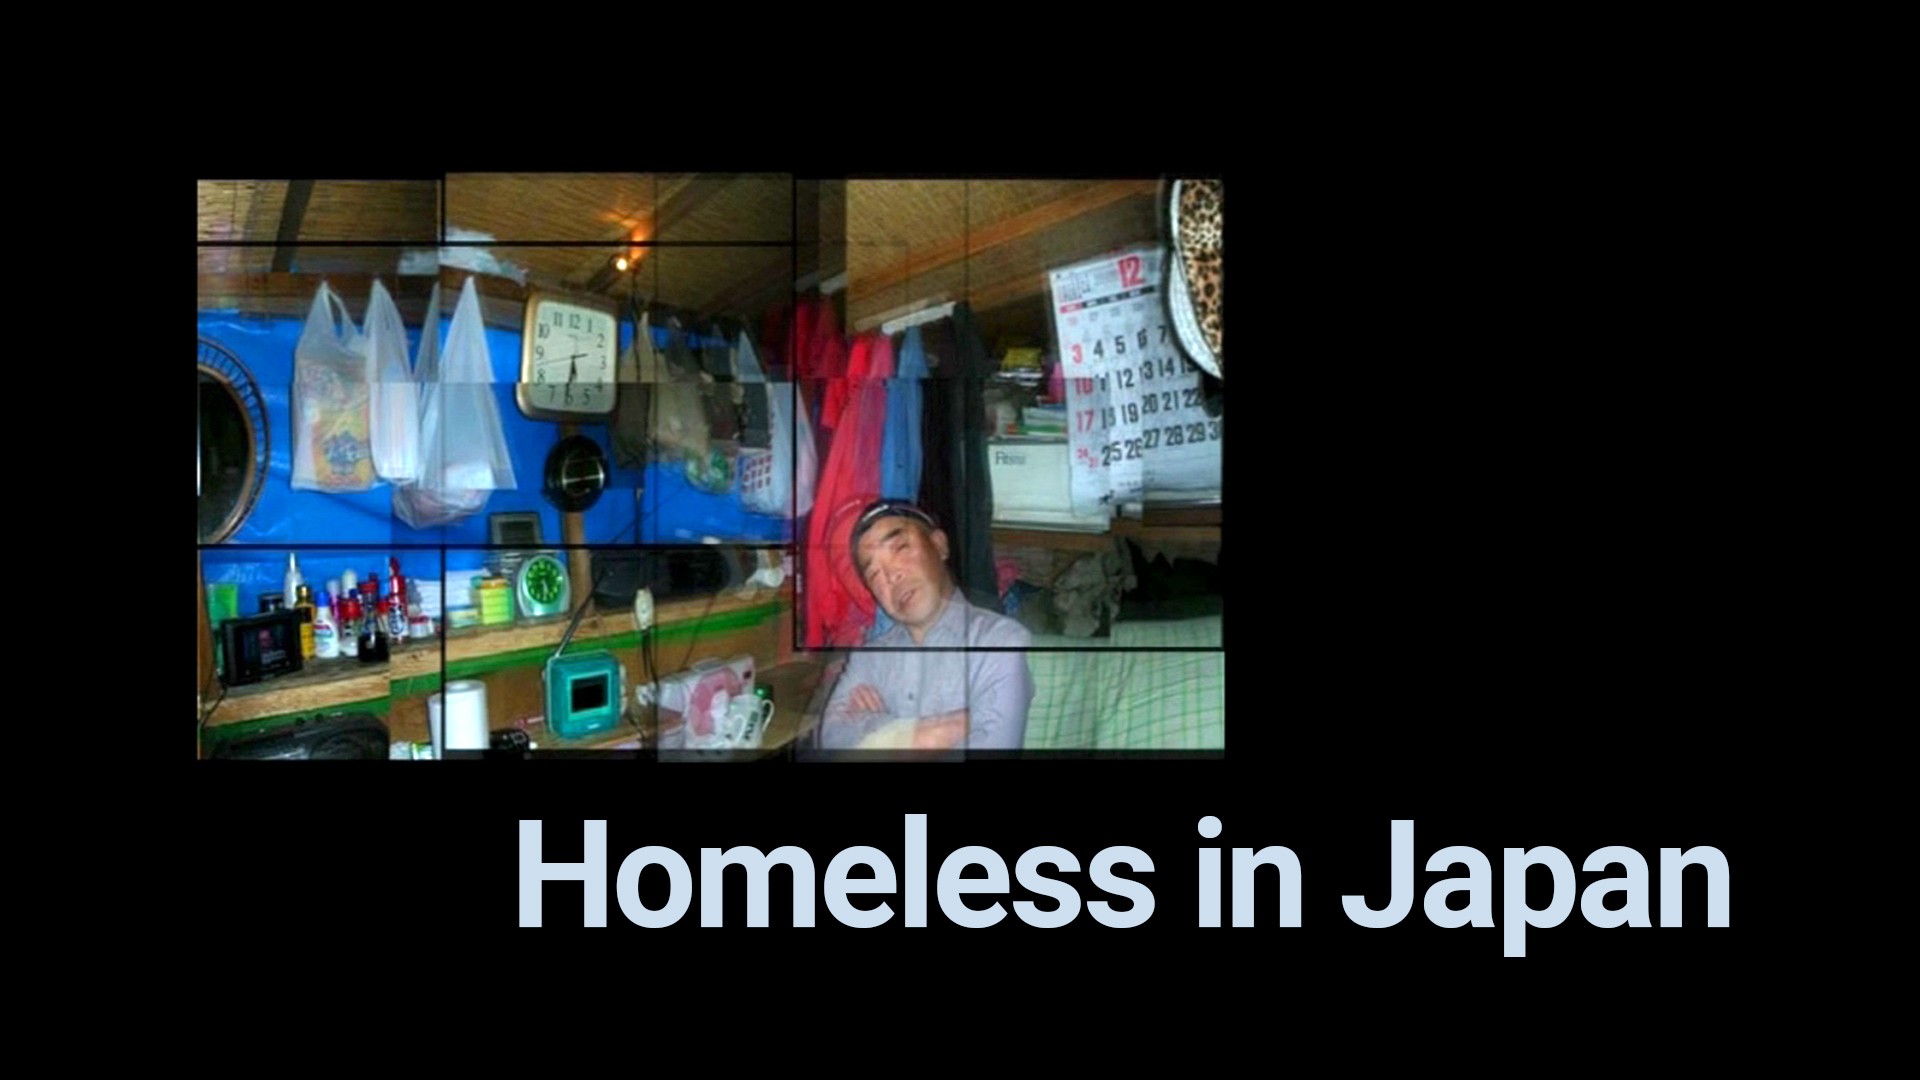 Homeless in Japan